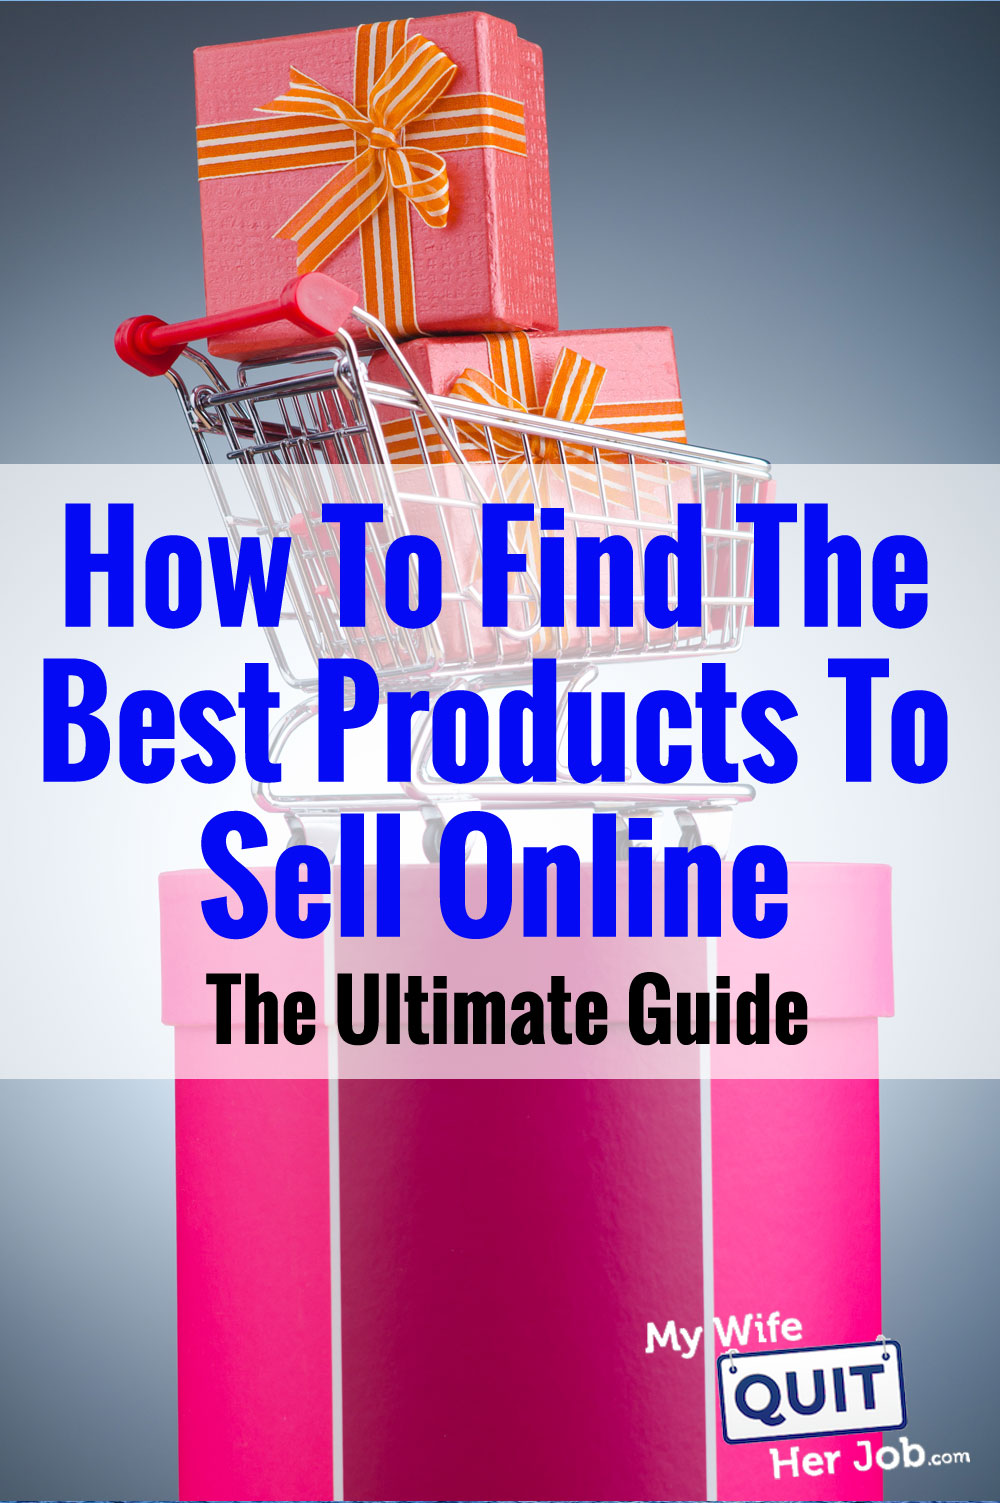 How To Find The Best Products To Sell Online - The Ultimate Step By Step Guide